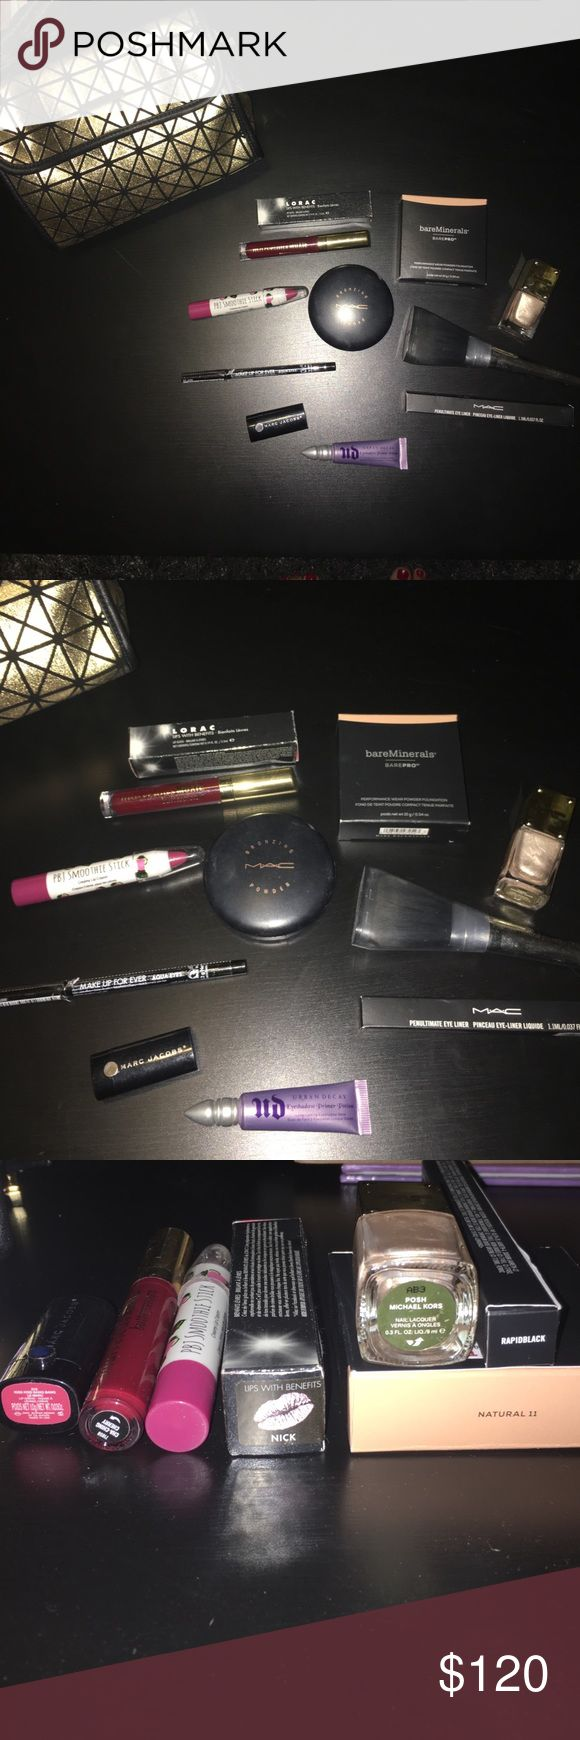 Beauty/Makeup Bundle w/ Makeup Bag Sephora Powder Brush (used once, brush has a small dent) Makeup Forever Black Aqua Eyes Pencil Eyeliner (broke seal never used), Eye Lash Curler, Michael Kors Polish(used 2xs)PBJ Smoothie Stick (swatched), BareMinerals Marvelous Moxie ButterCream (Cha-Ching Cherry, new),Lorac Lip Gloss(new, color is Nick, pale pinkish), Mini Marc Jacobs Lip Stick(kiss kiss bang bang),Mac Liquid Eyeliner, Mac Bronzing Powder (Refined Golden,80% full), BareMinerals BarePro…